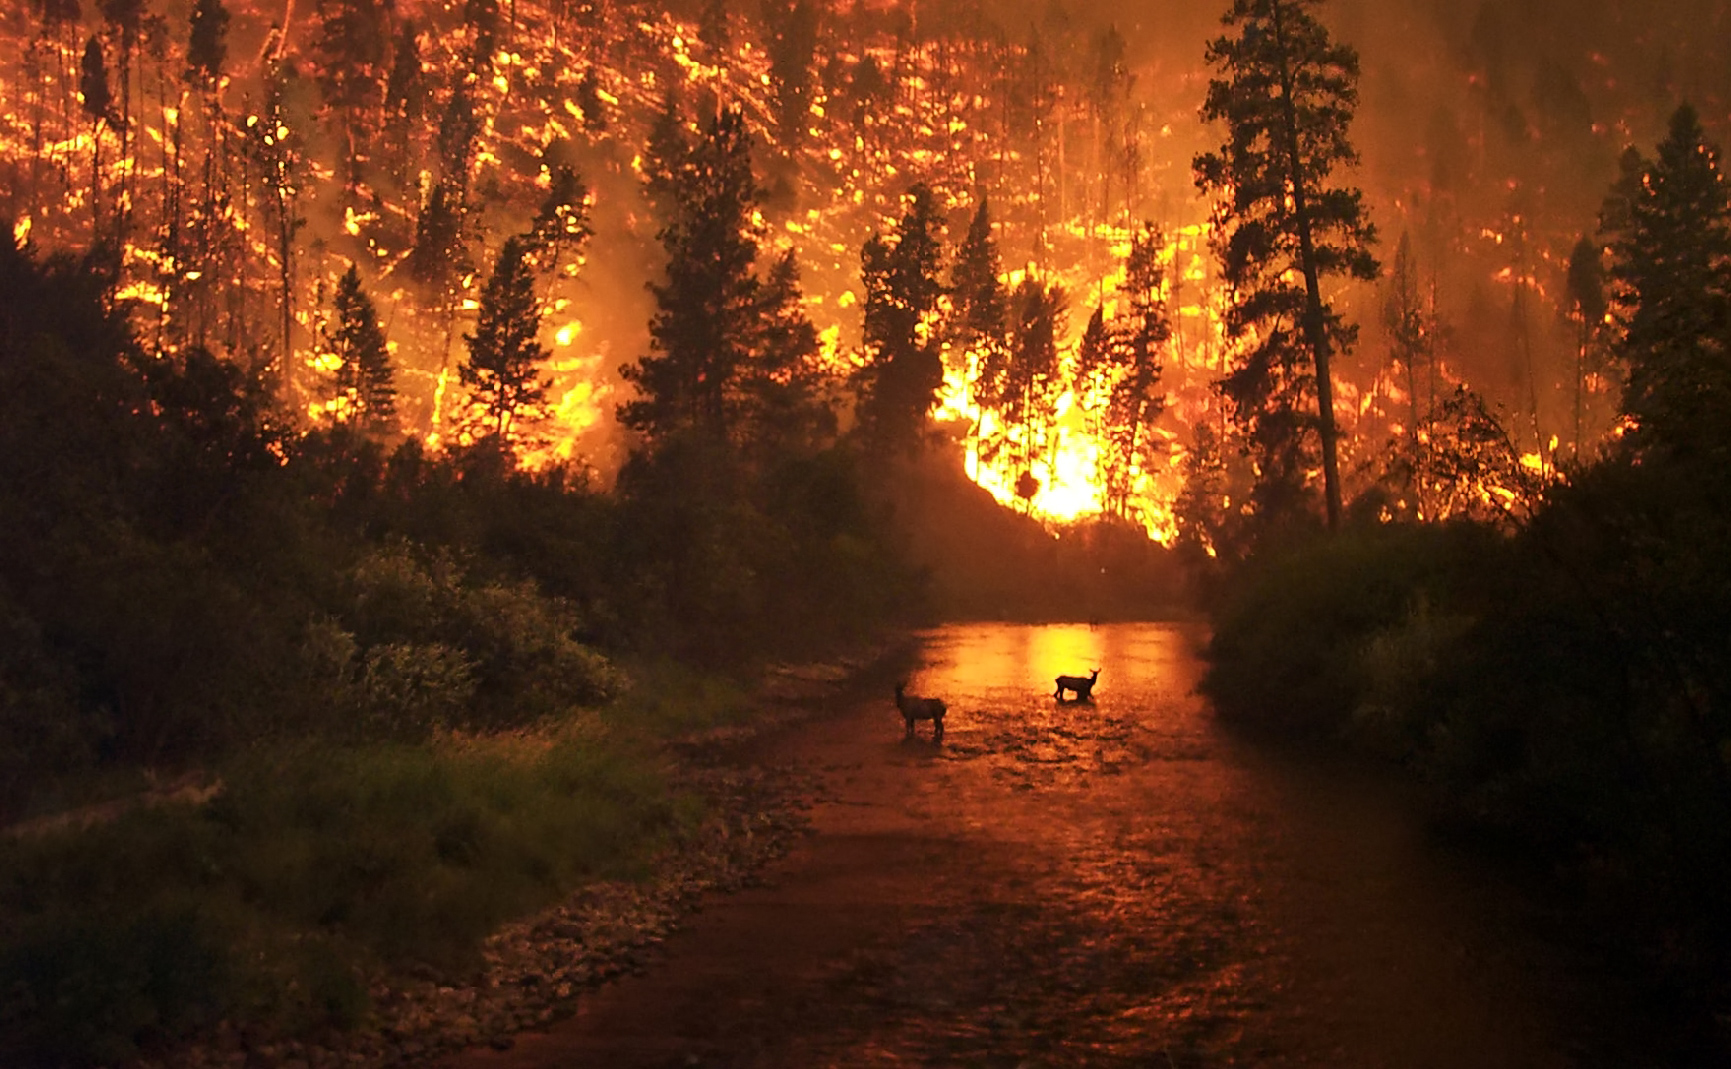 wikimedia cc photo of deer in a wildfire